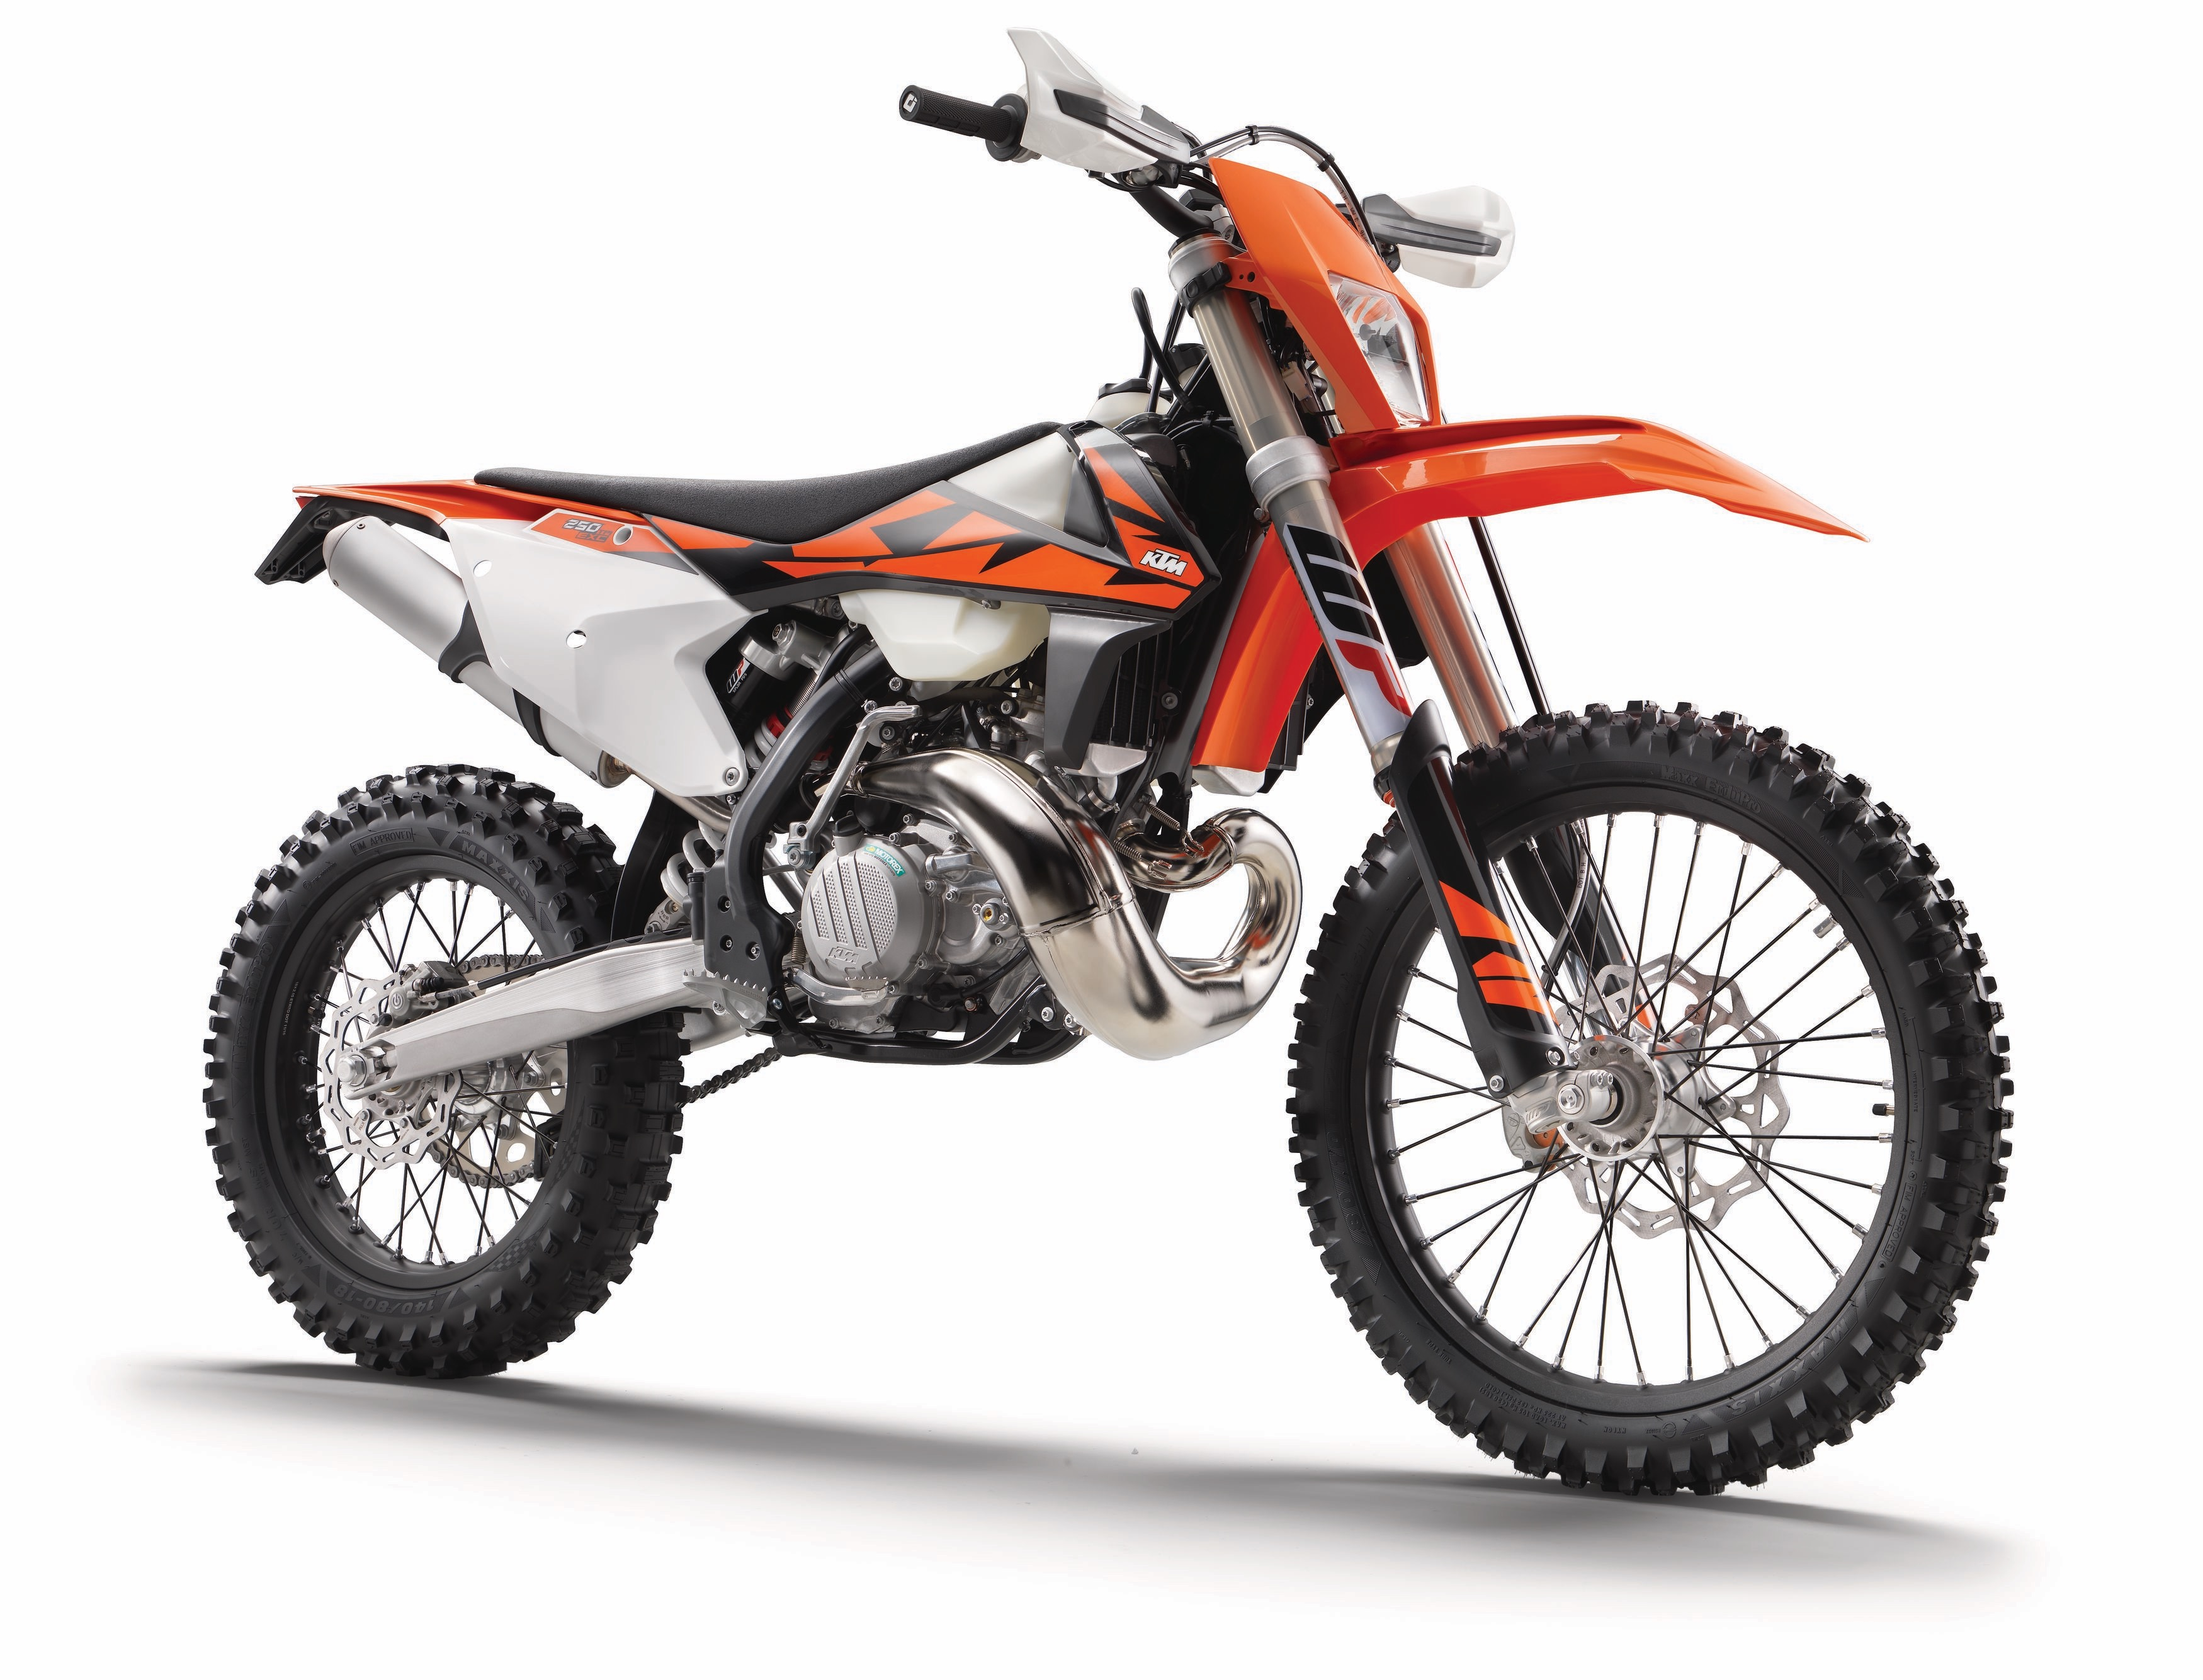 ktm unveils 2018 fuel-injected two-strokes - australasian dirt